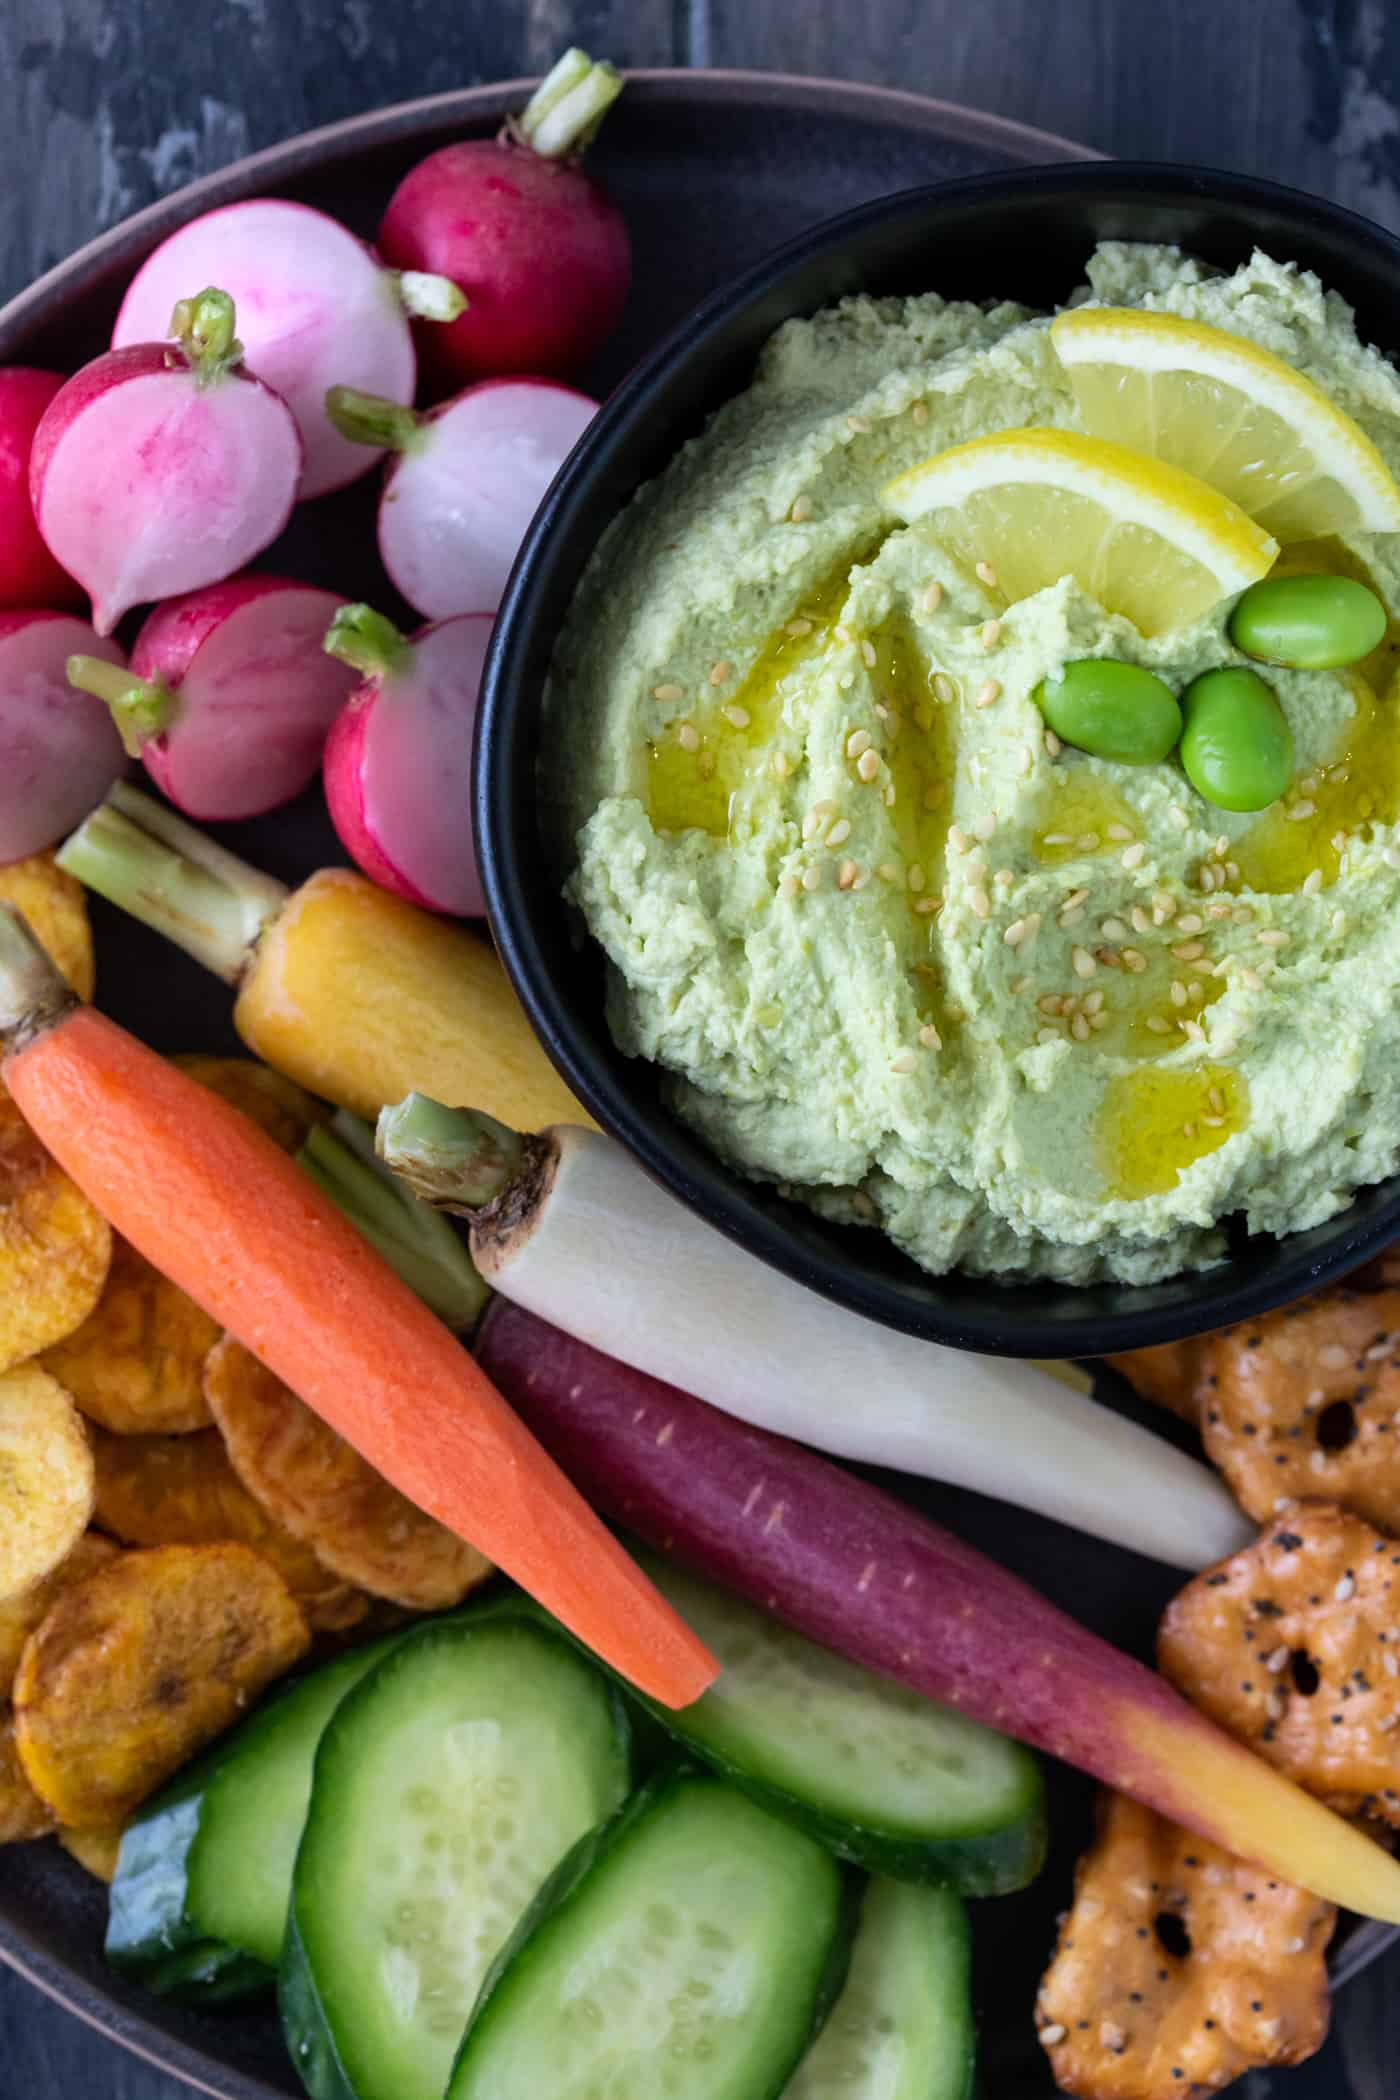 Black bowl of homemade edamame hummus recipe surrounded by fresh vegetables.